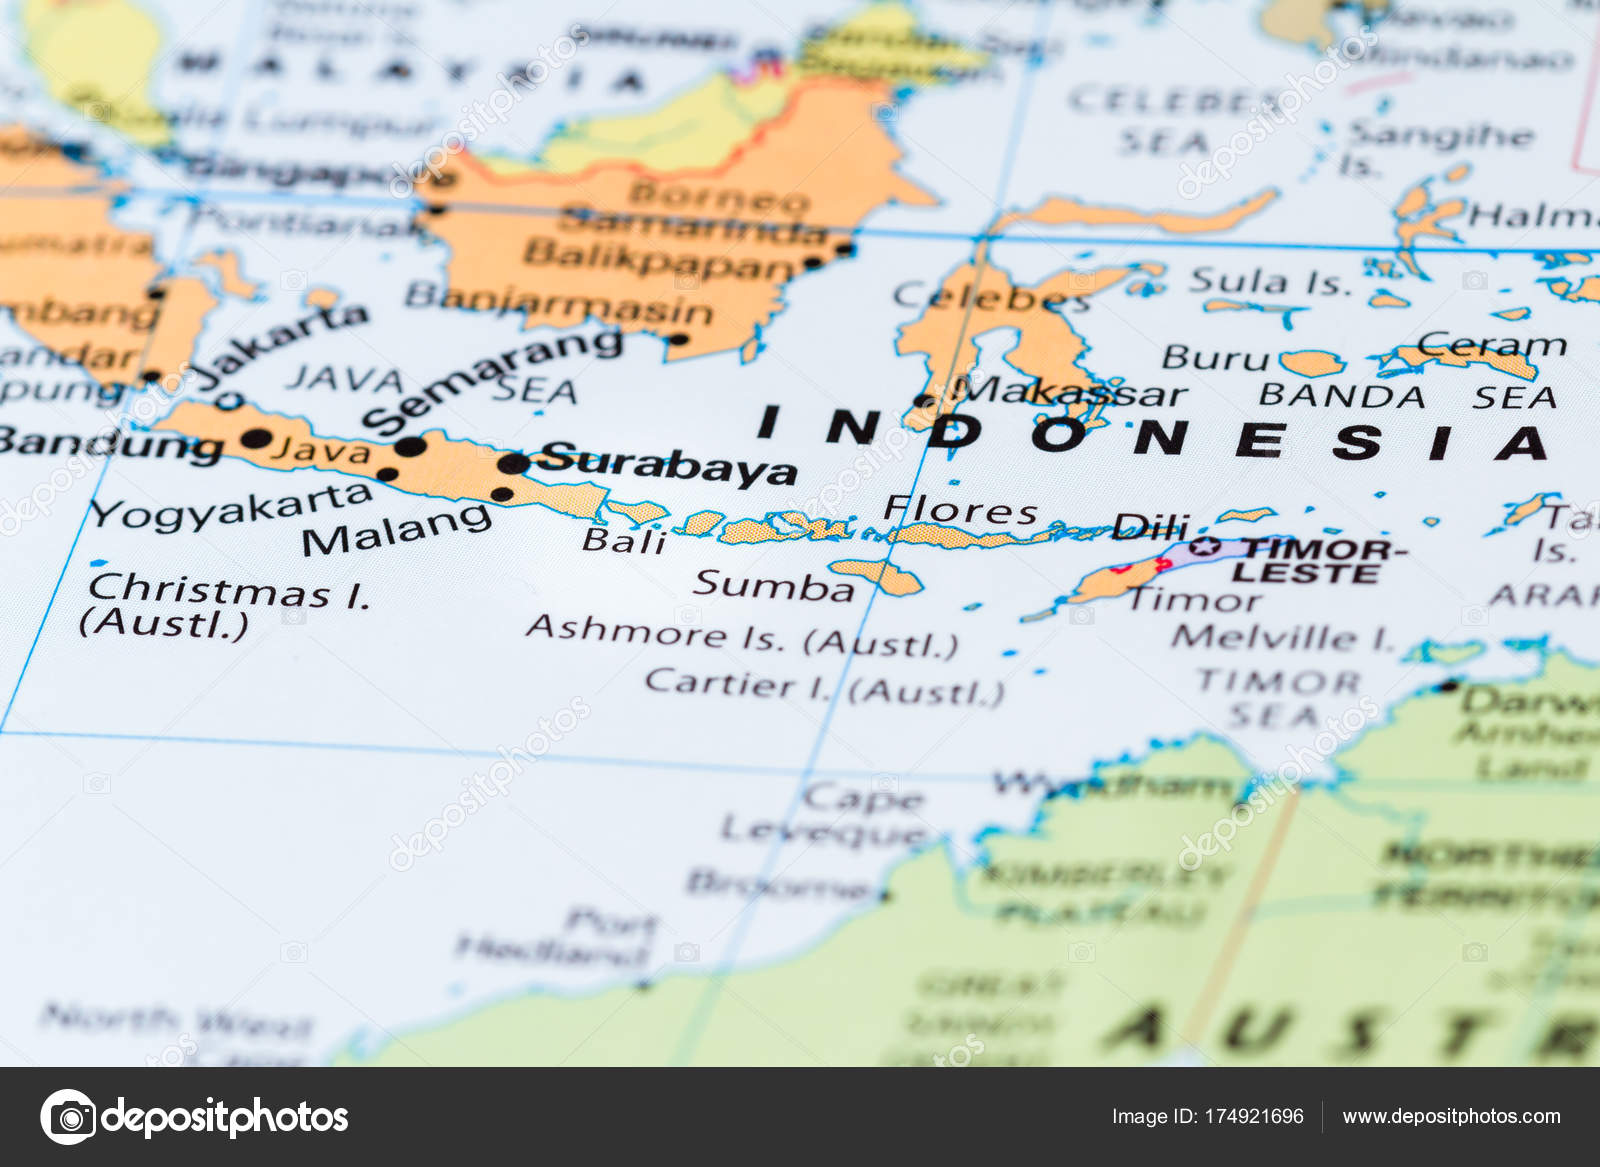 Bali on a map stock photo wollertz 174921696 close up of bali and other south pacific islands on a world map photo by wollertz gumiabroncs Images